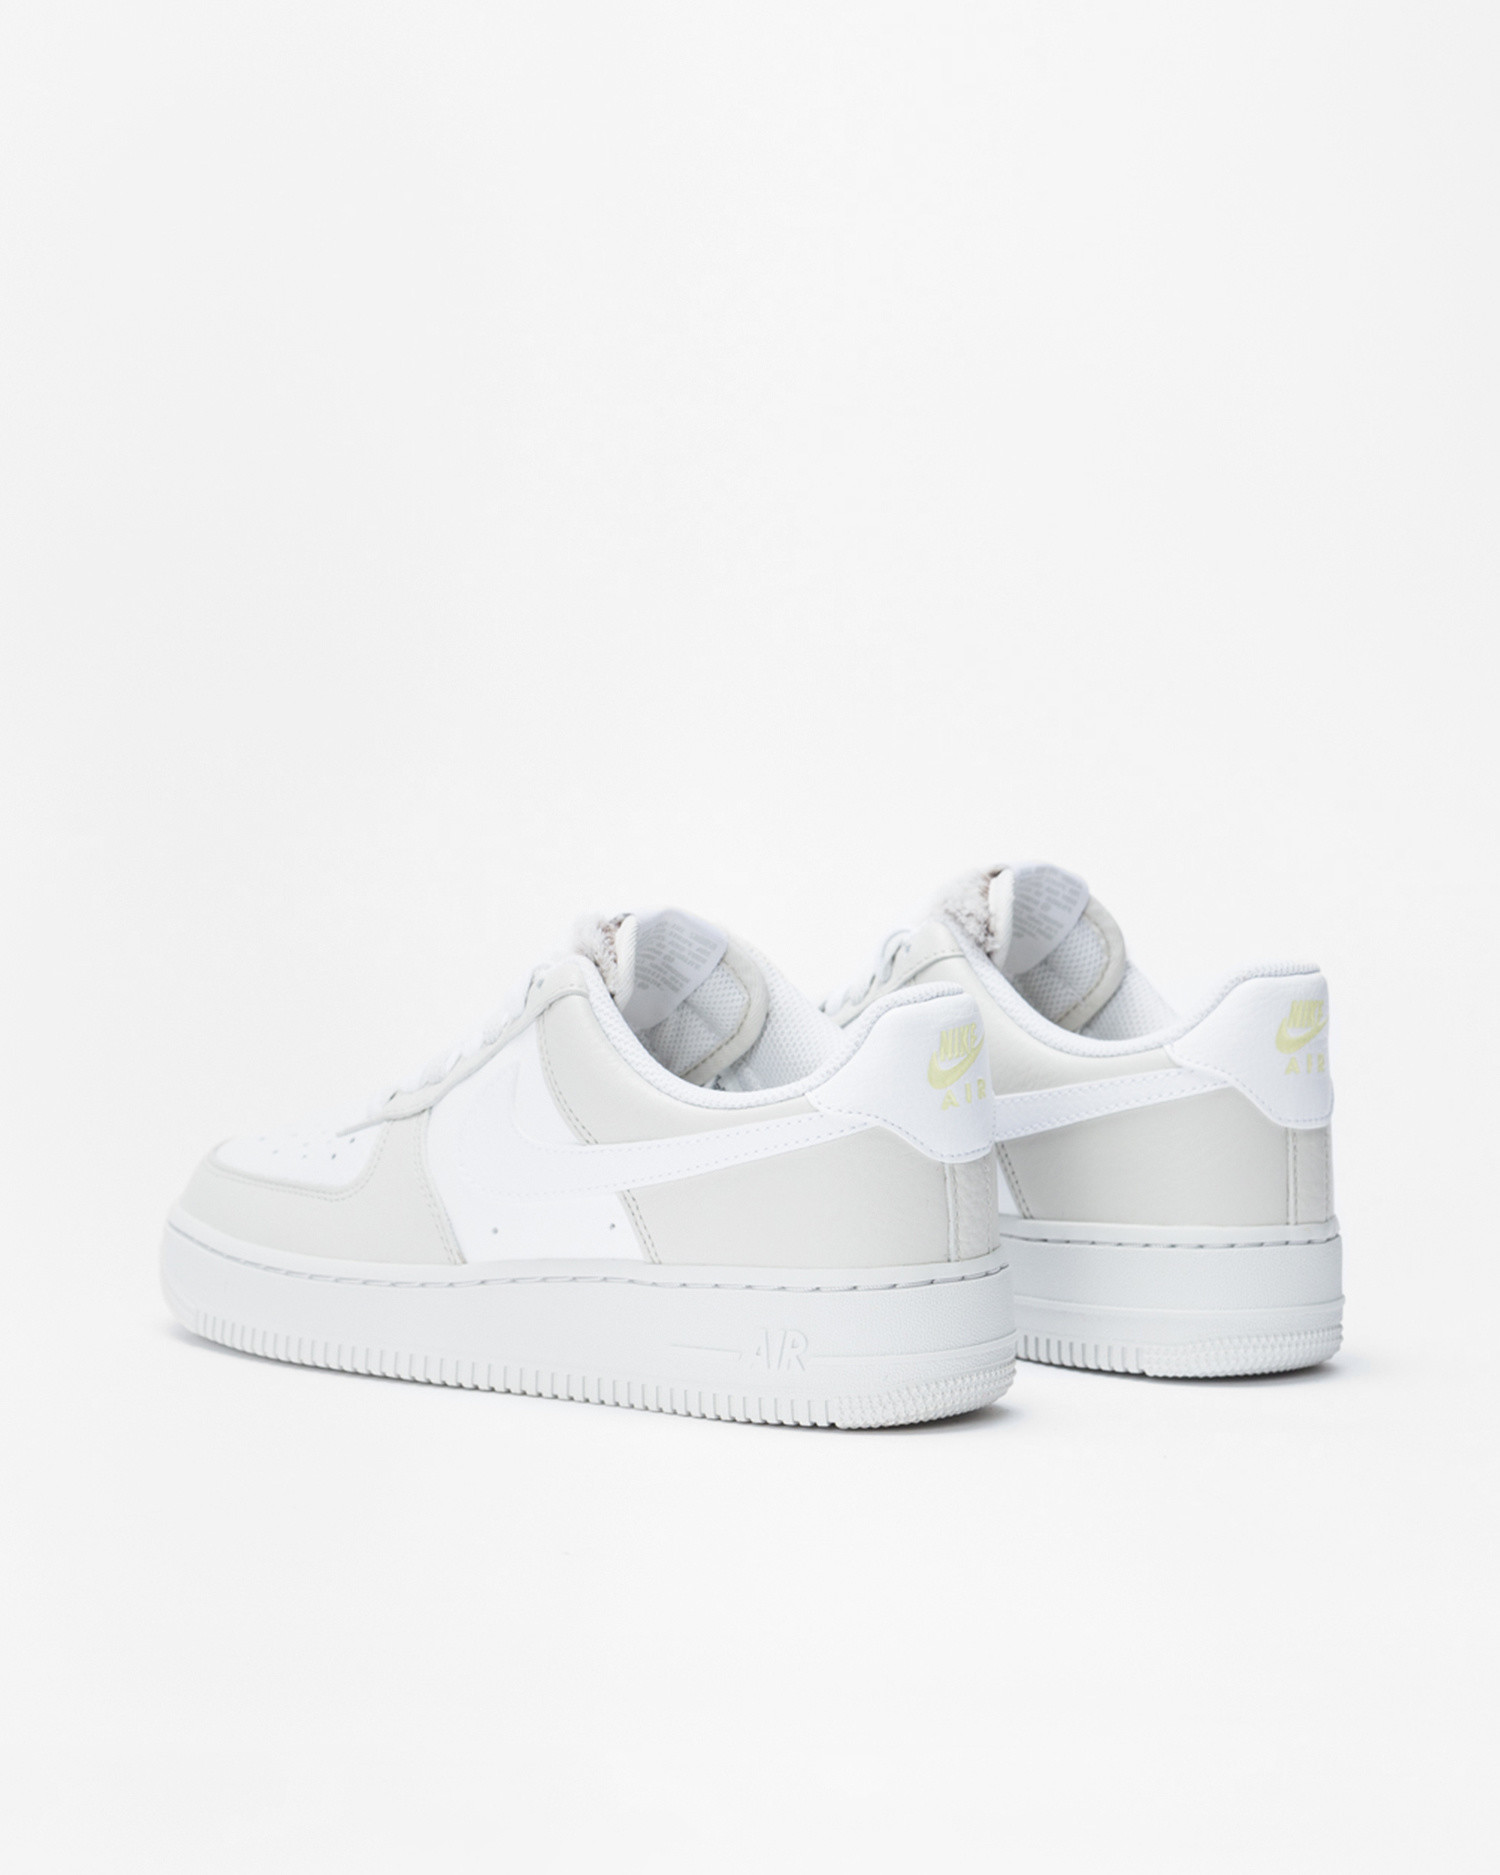 Nike Wmns Air Force 1'07 Light bone/white-photon dust-life lime